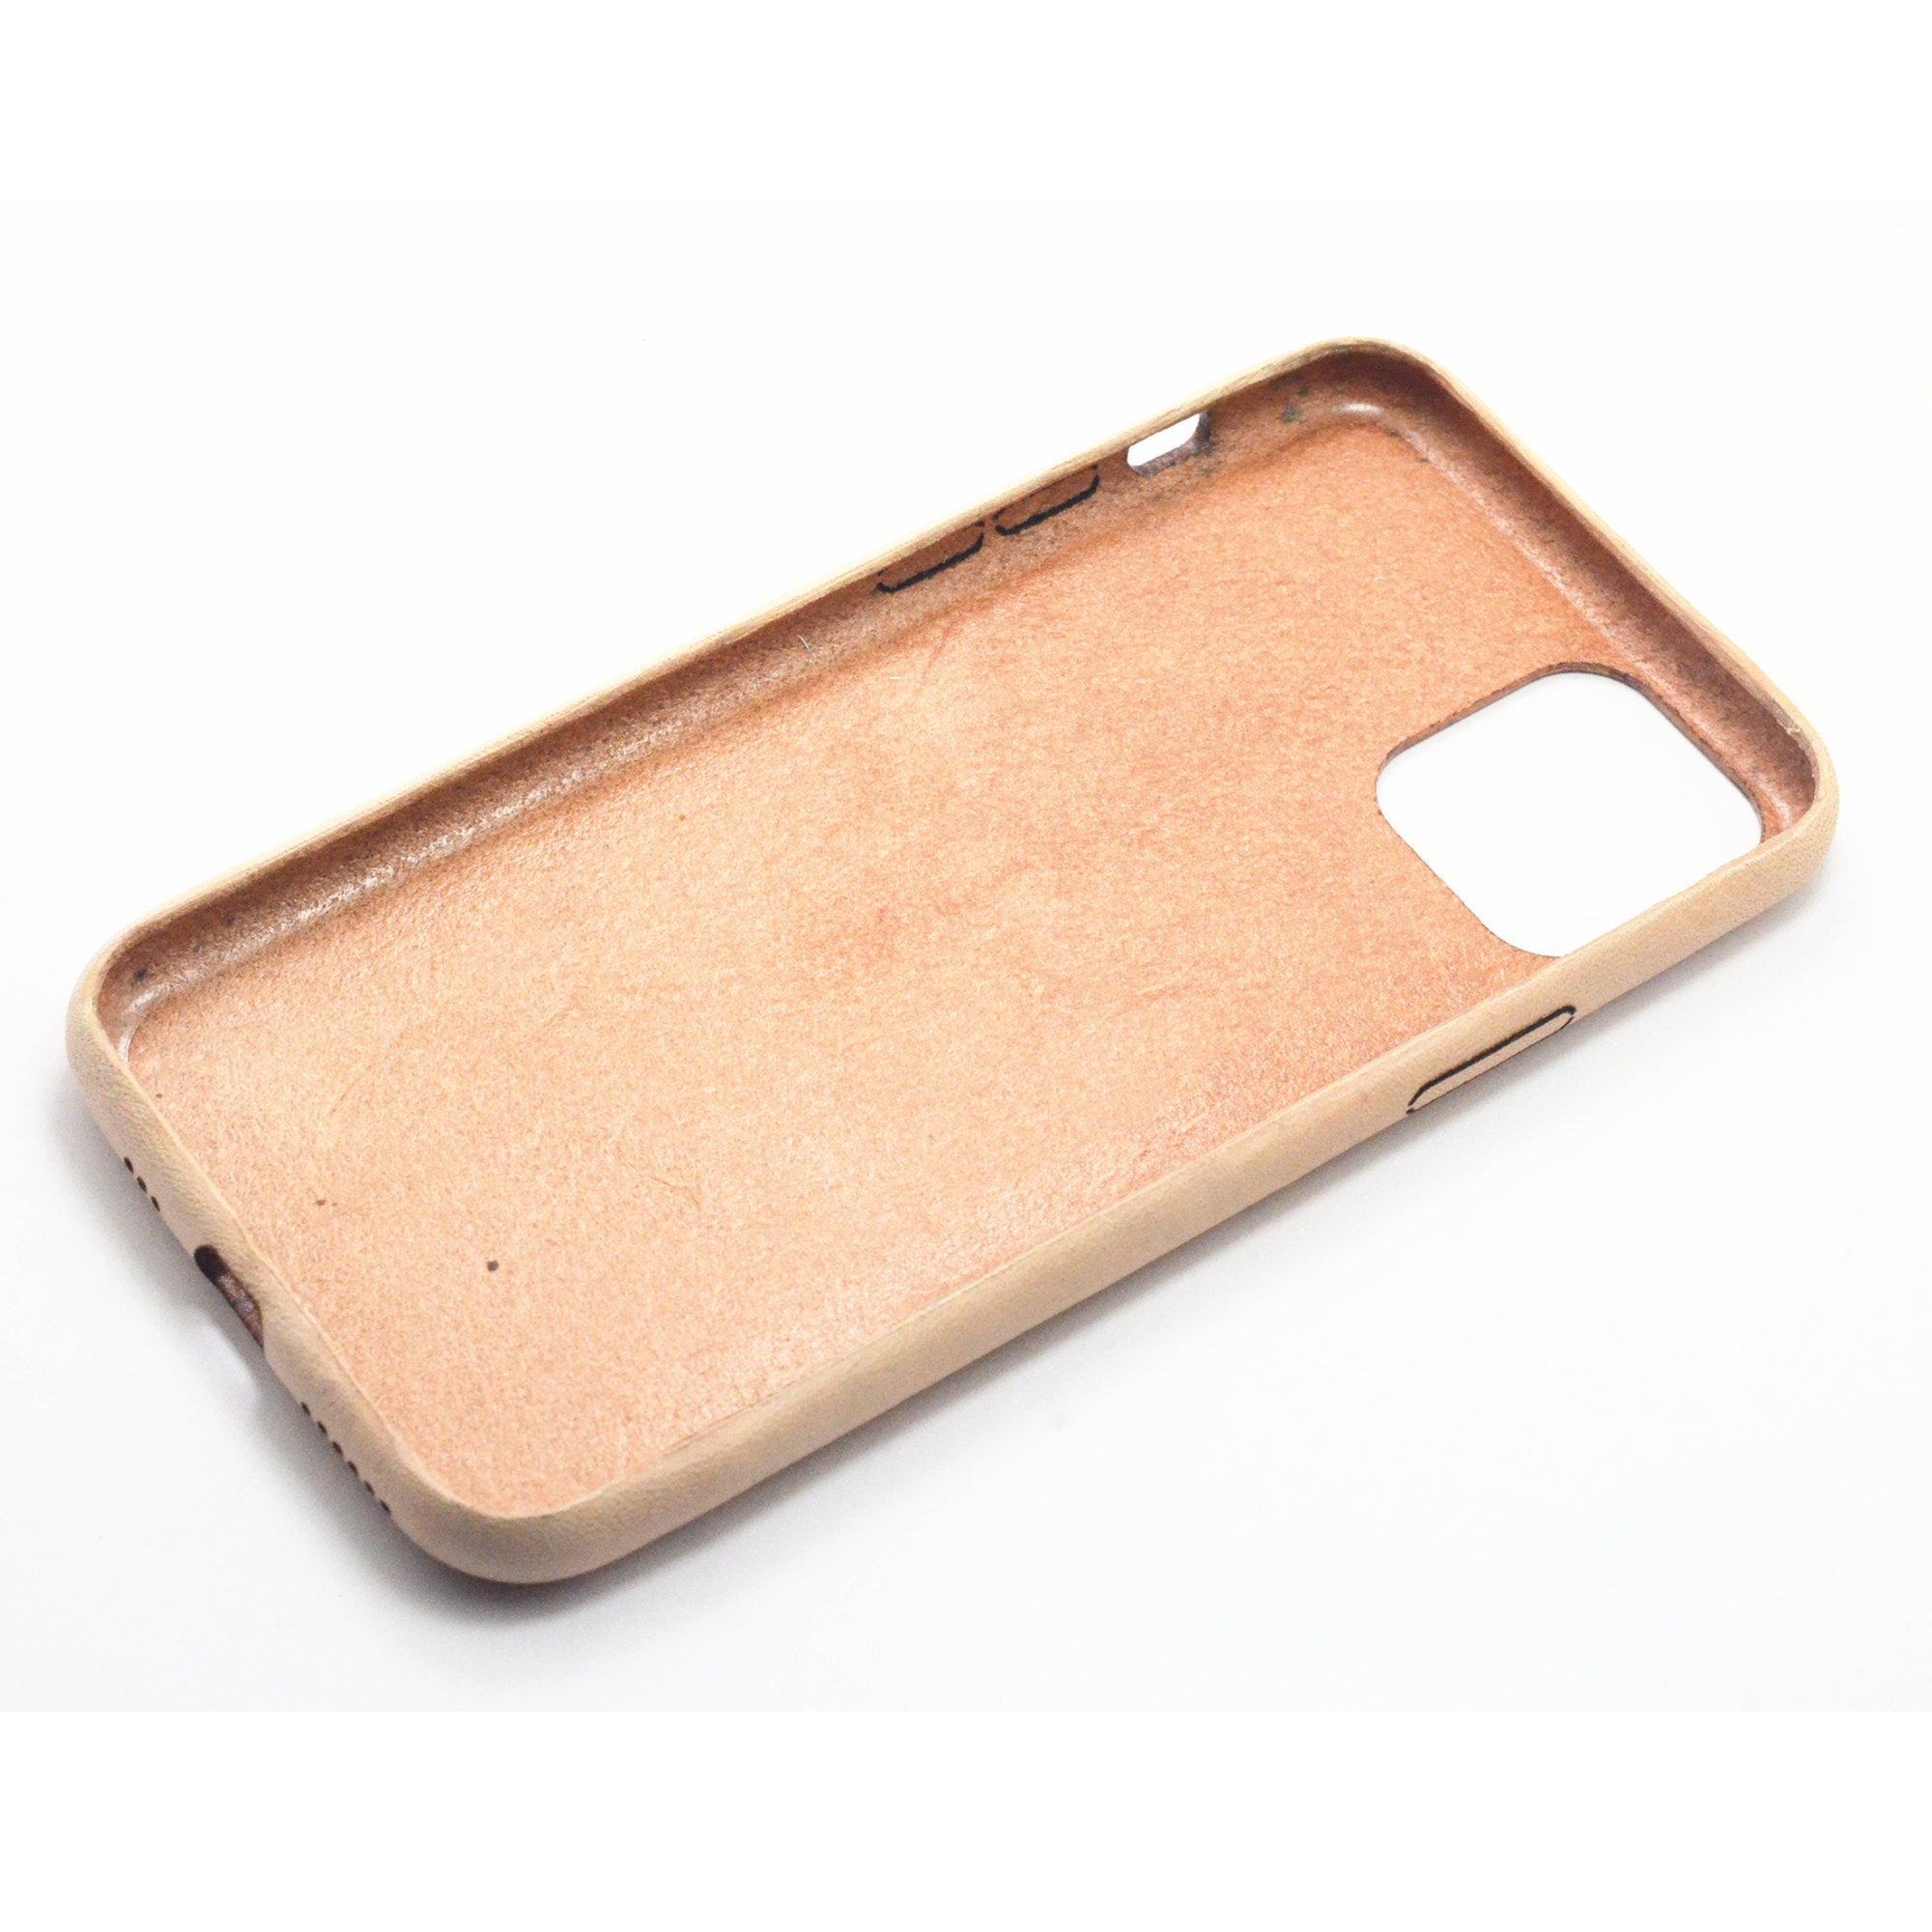 JJNUSA  Best Sale Genuine Leather Distressed  Vegetable tanned  Leather for Iphone 11  Full Leather Case  Free Shipping